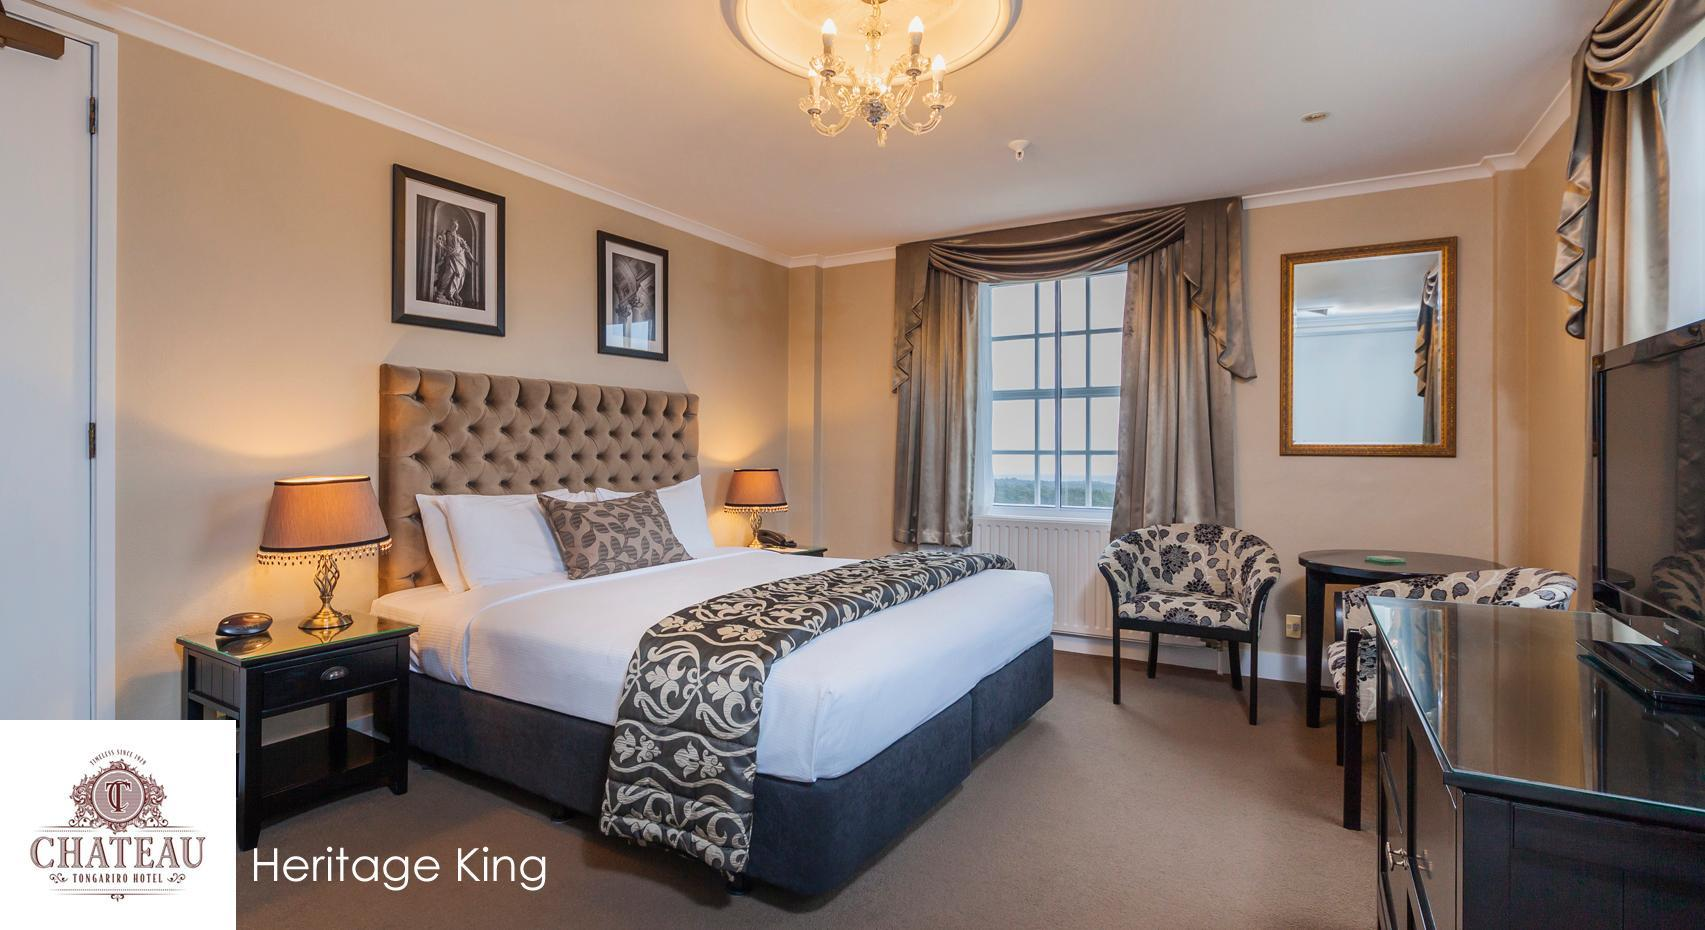 Heritage Hollywood soba s King krevetom (Heritage Hollywood Room with King Bed)